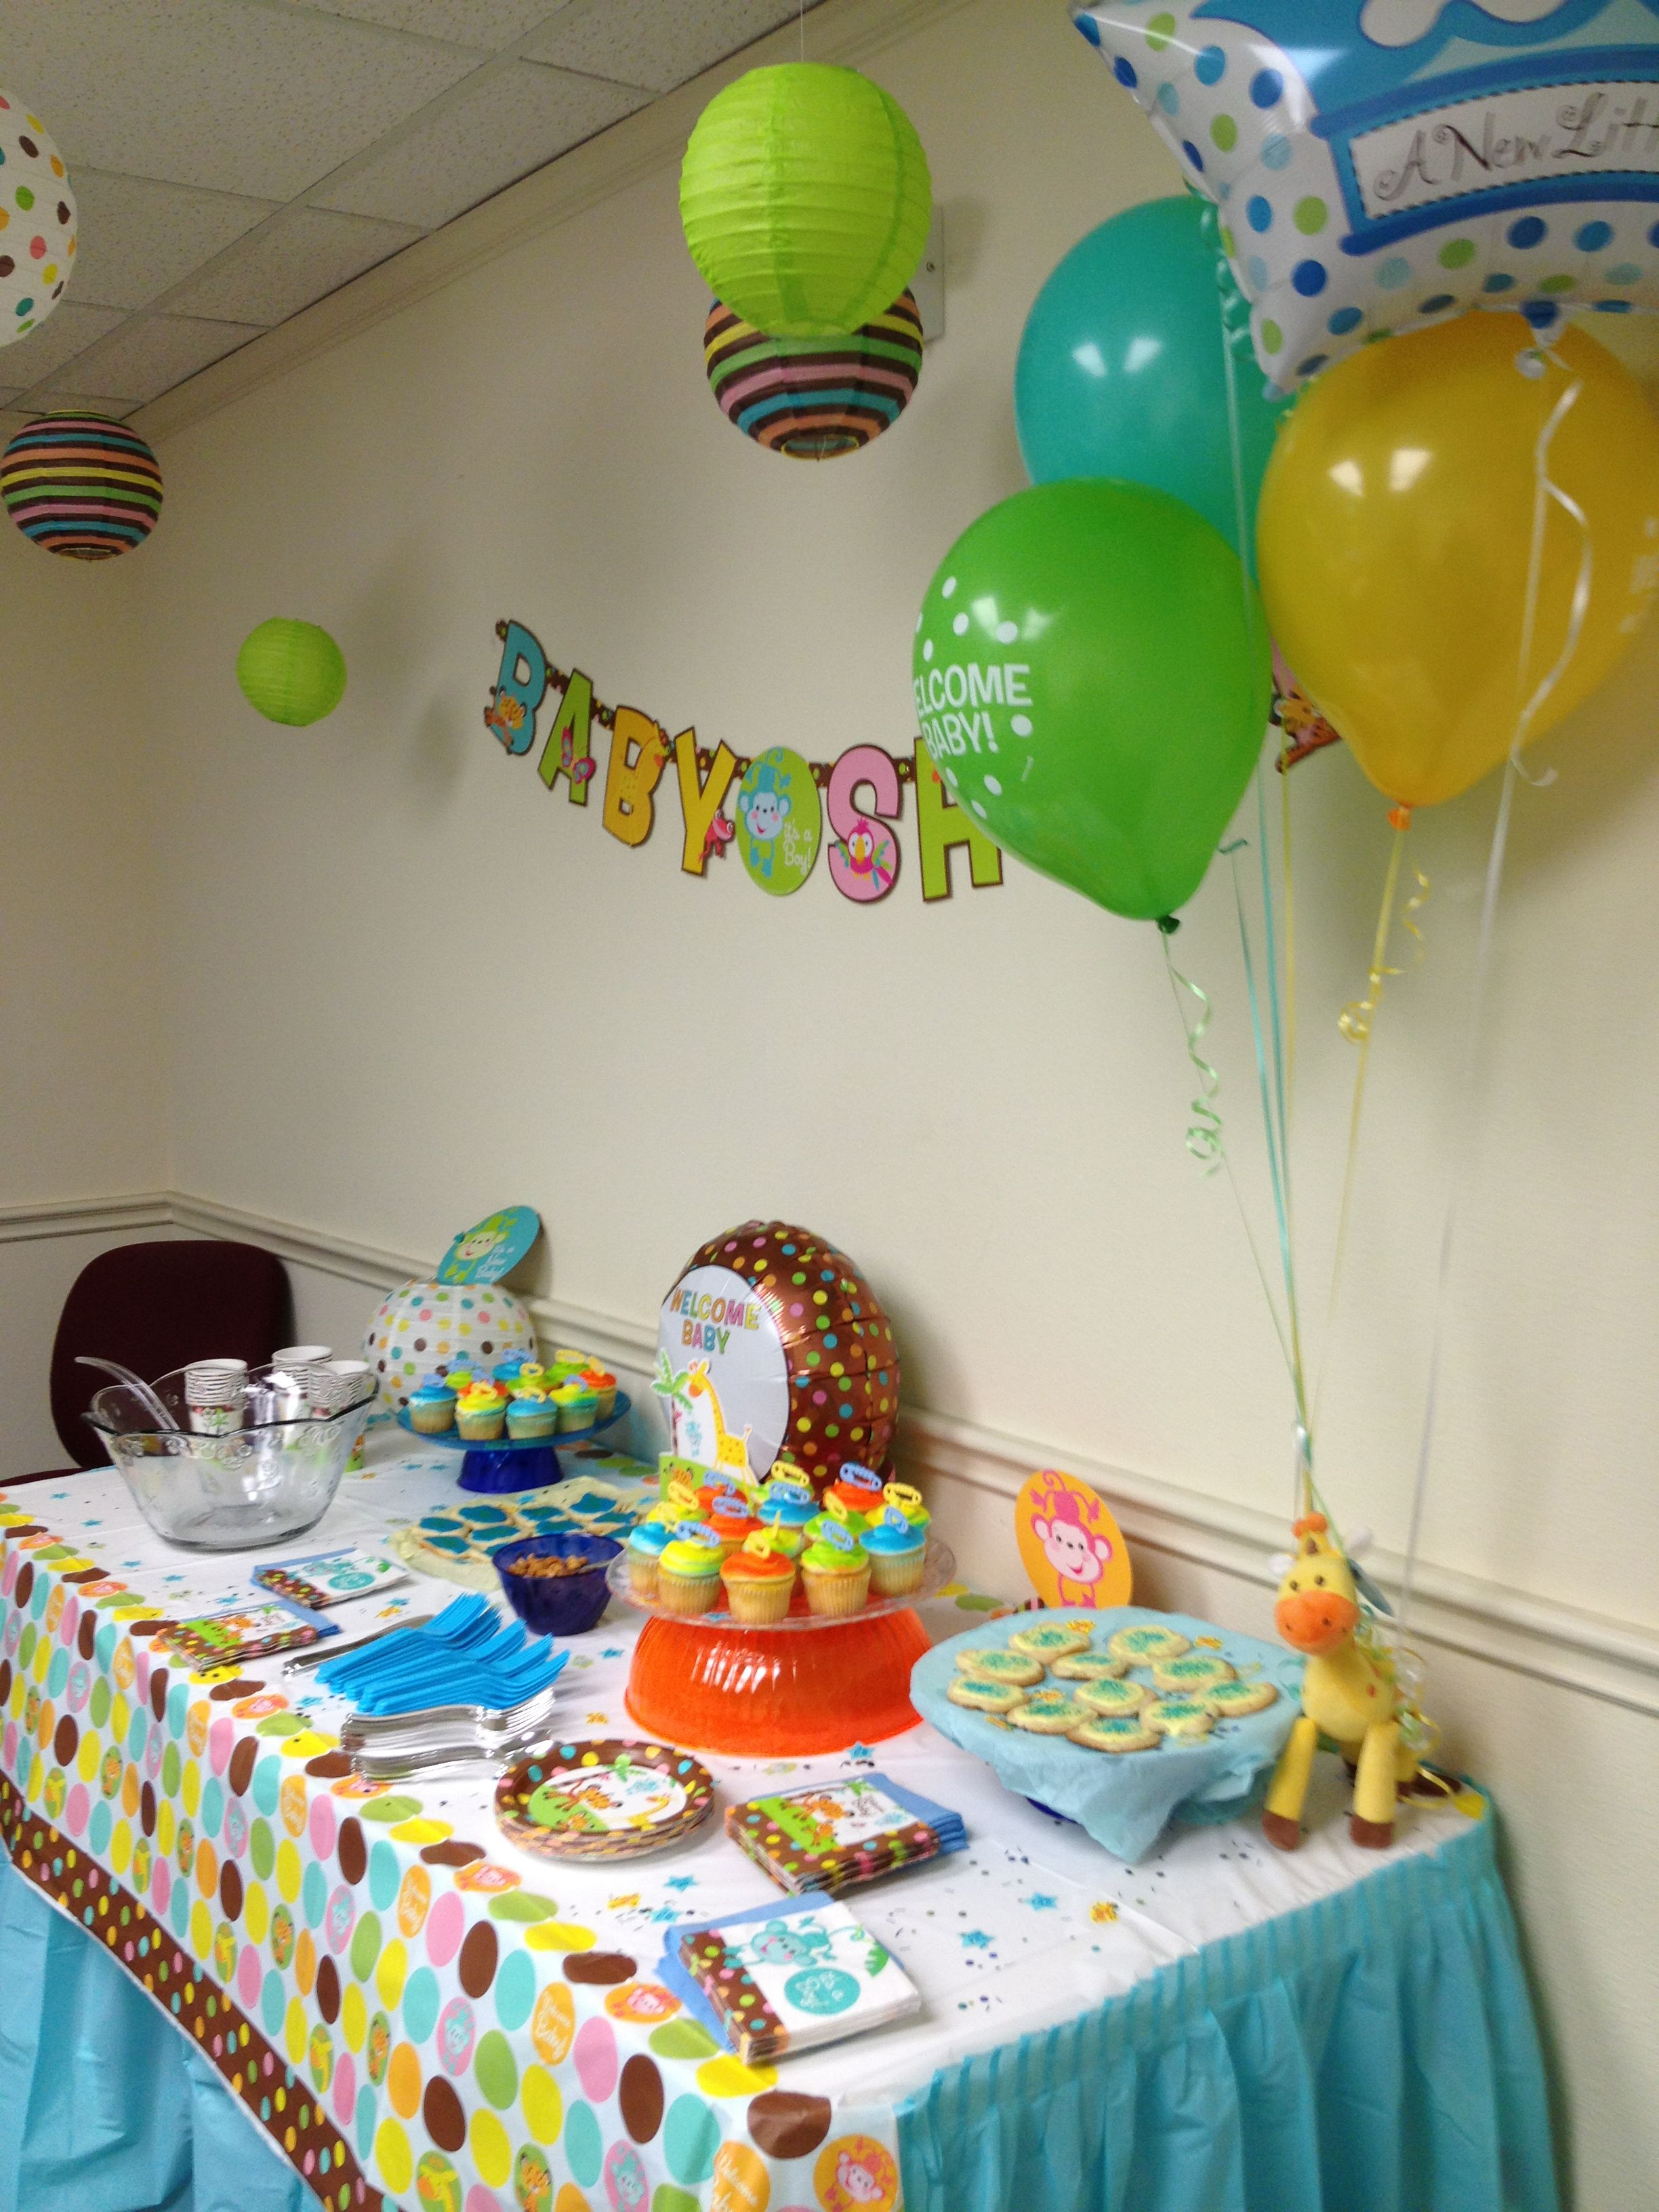 Fisher Price Baby Shower   A Stylish Celebration For A New Arrival!